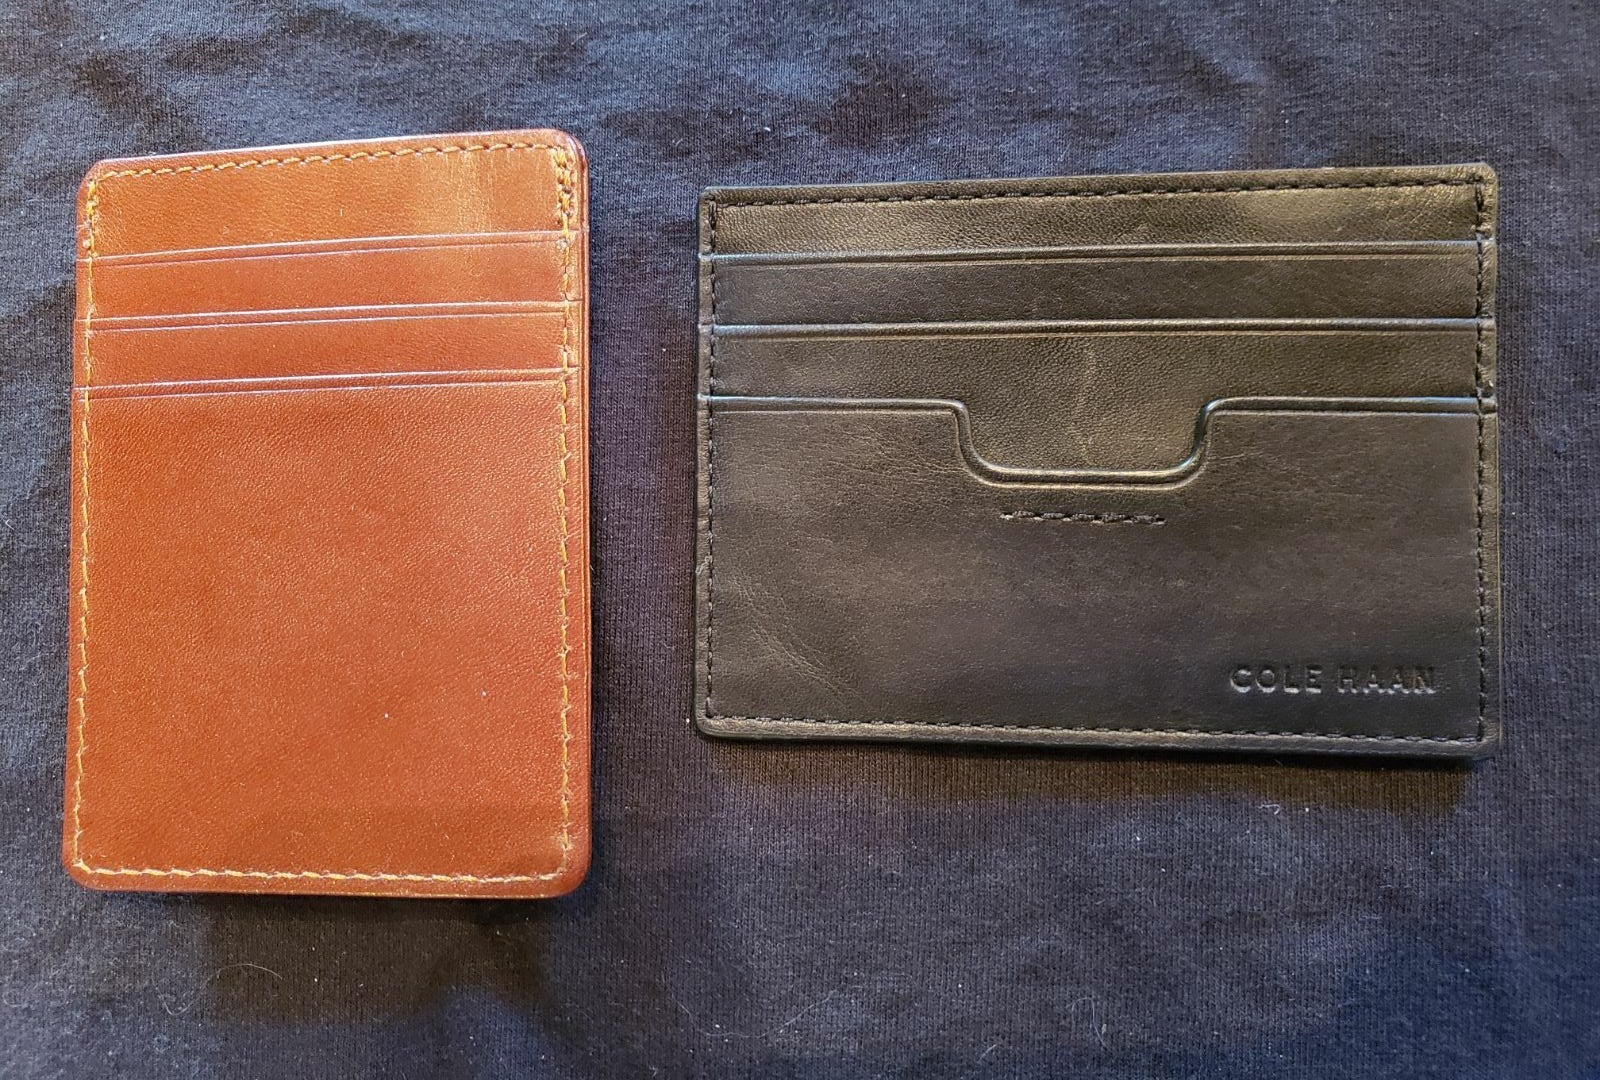 Cole Haan Wallet & Leather Wallet